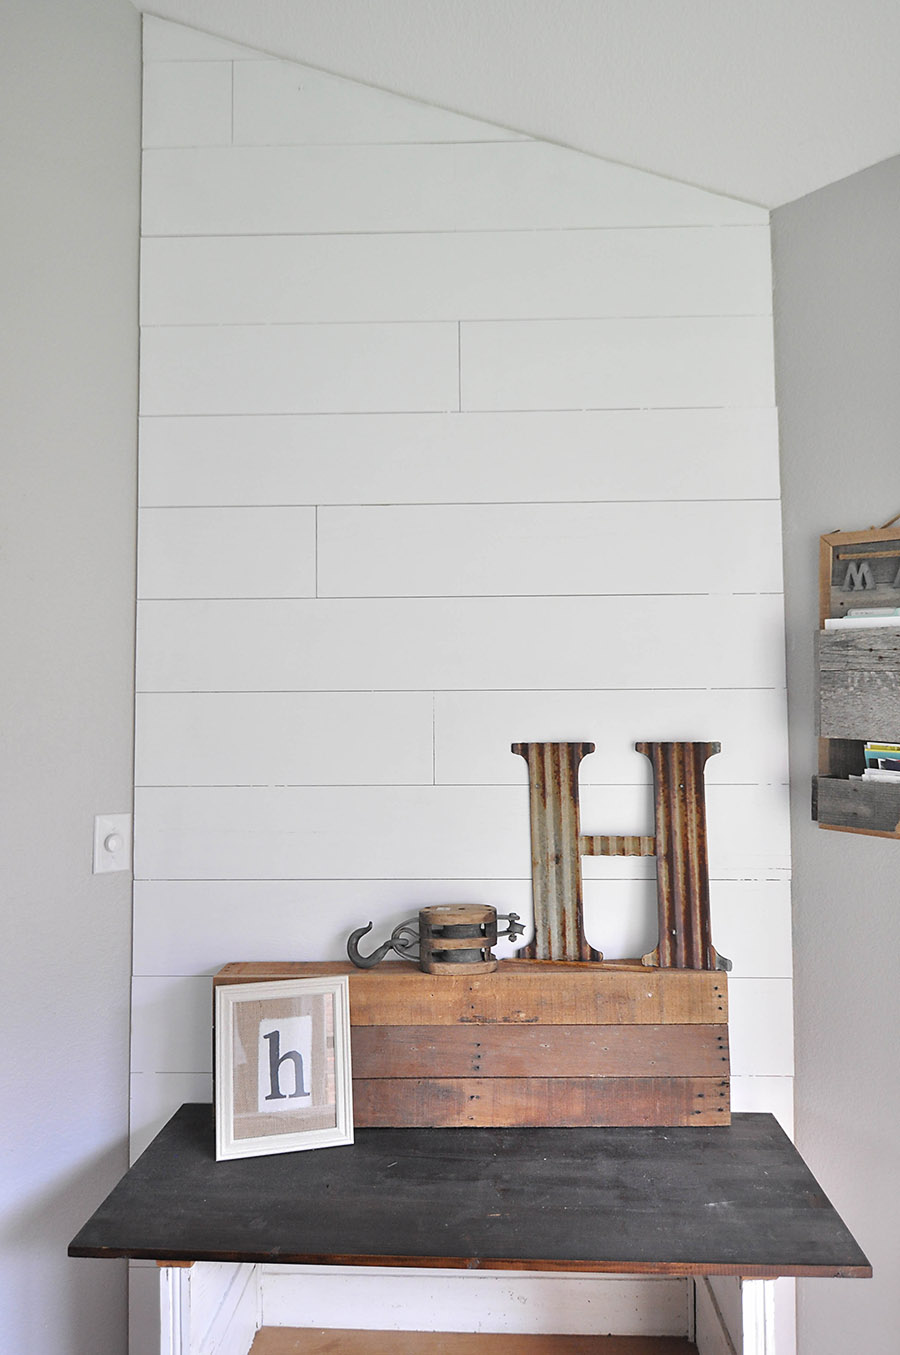 How to Plank an Accent Wall - DIY Shiplap for Less Than ...